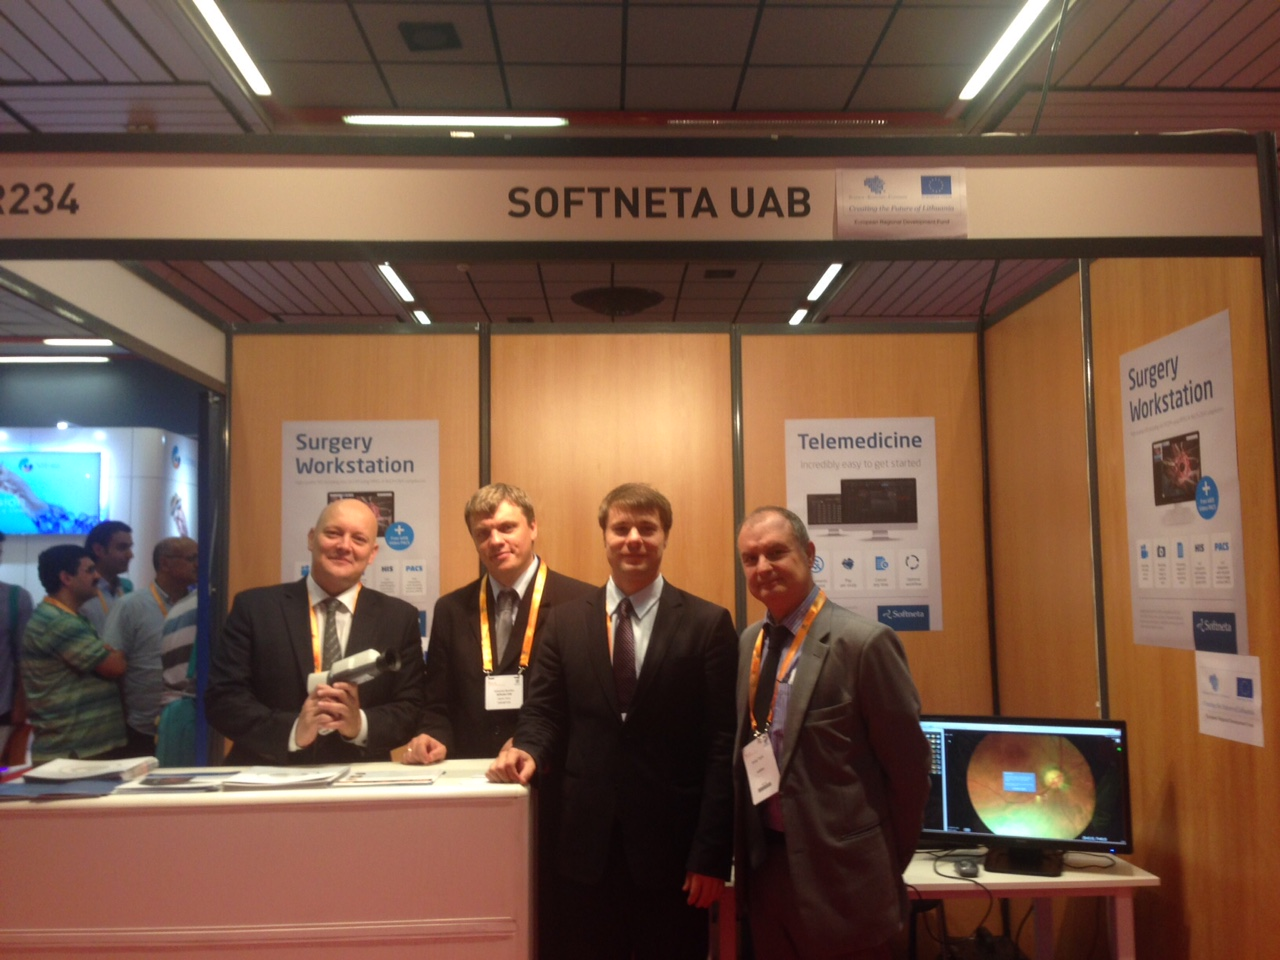 softneta medical imaging ophthalmology solutions